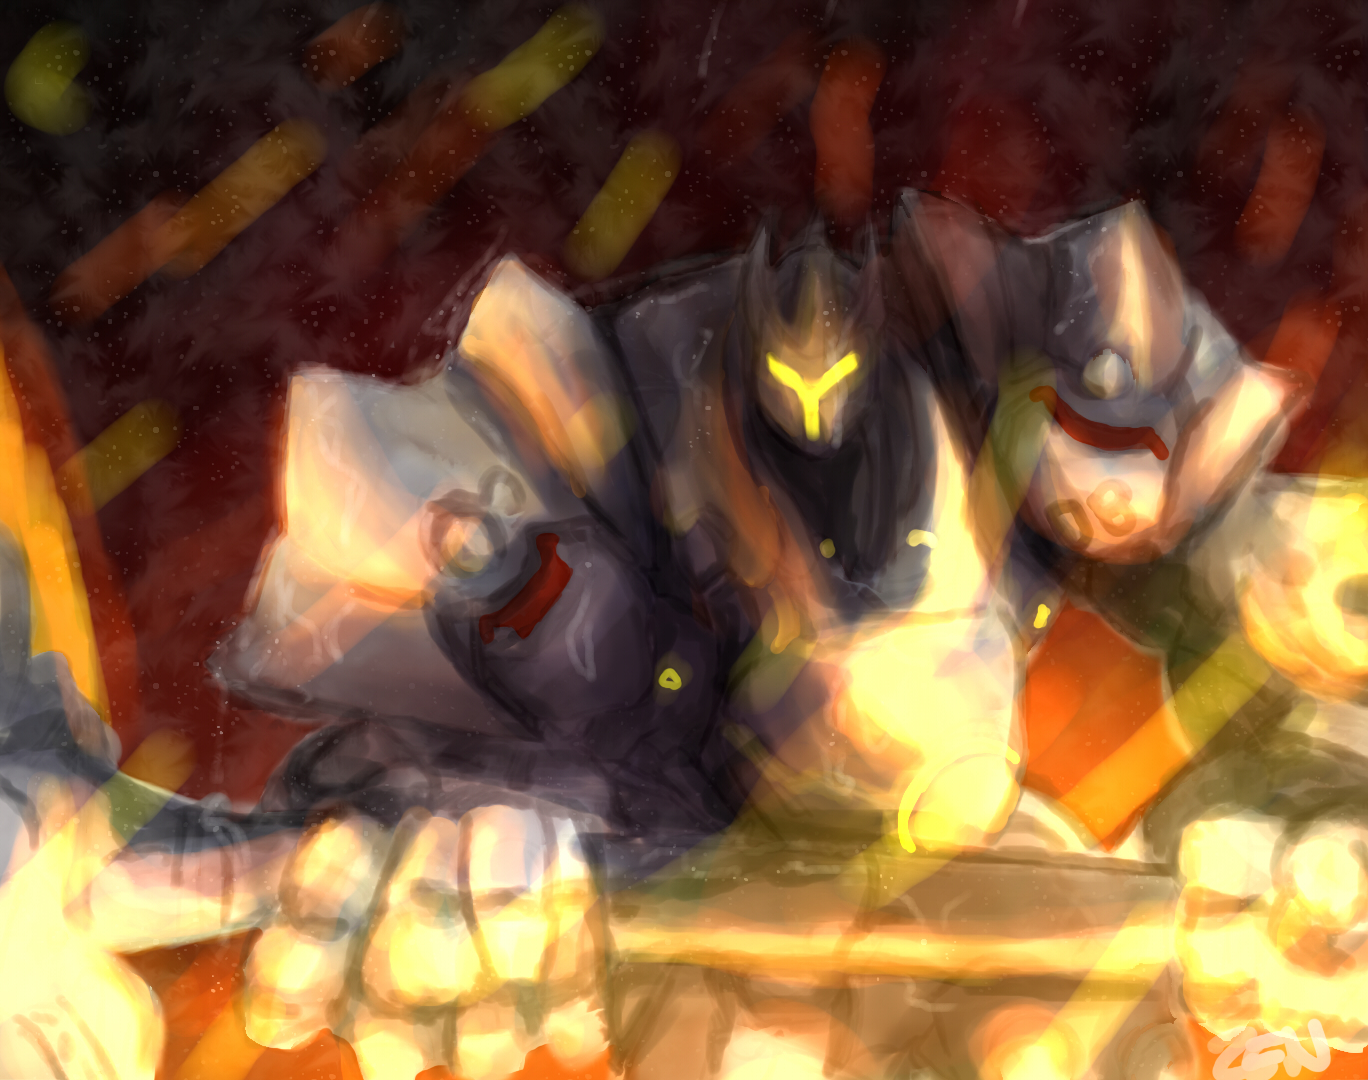 Reinhardt Throught the fire and the flame!